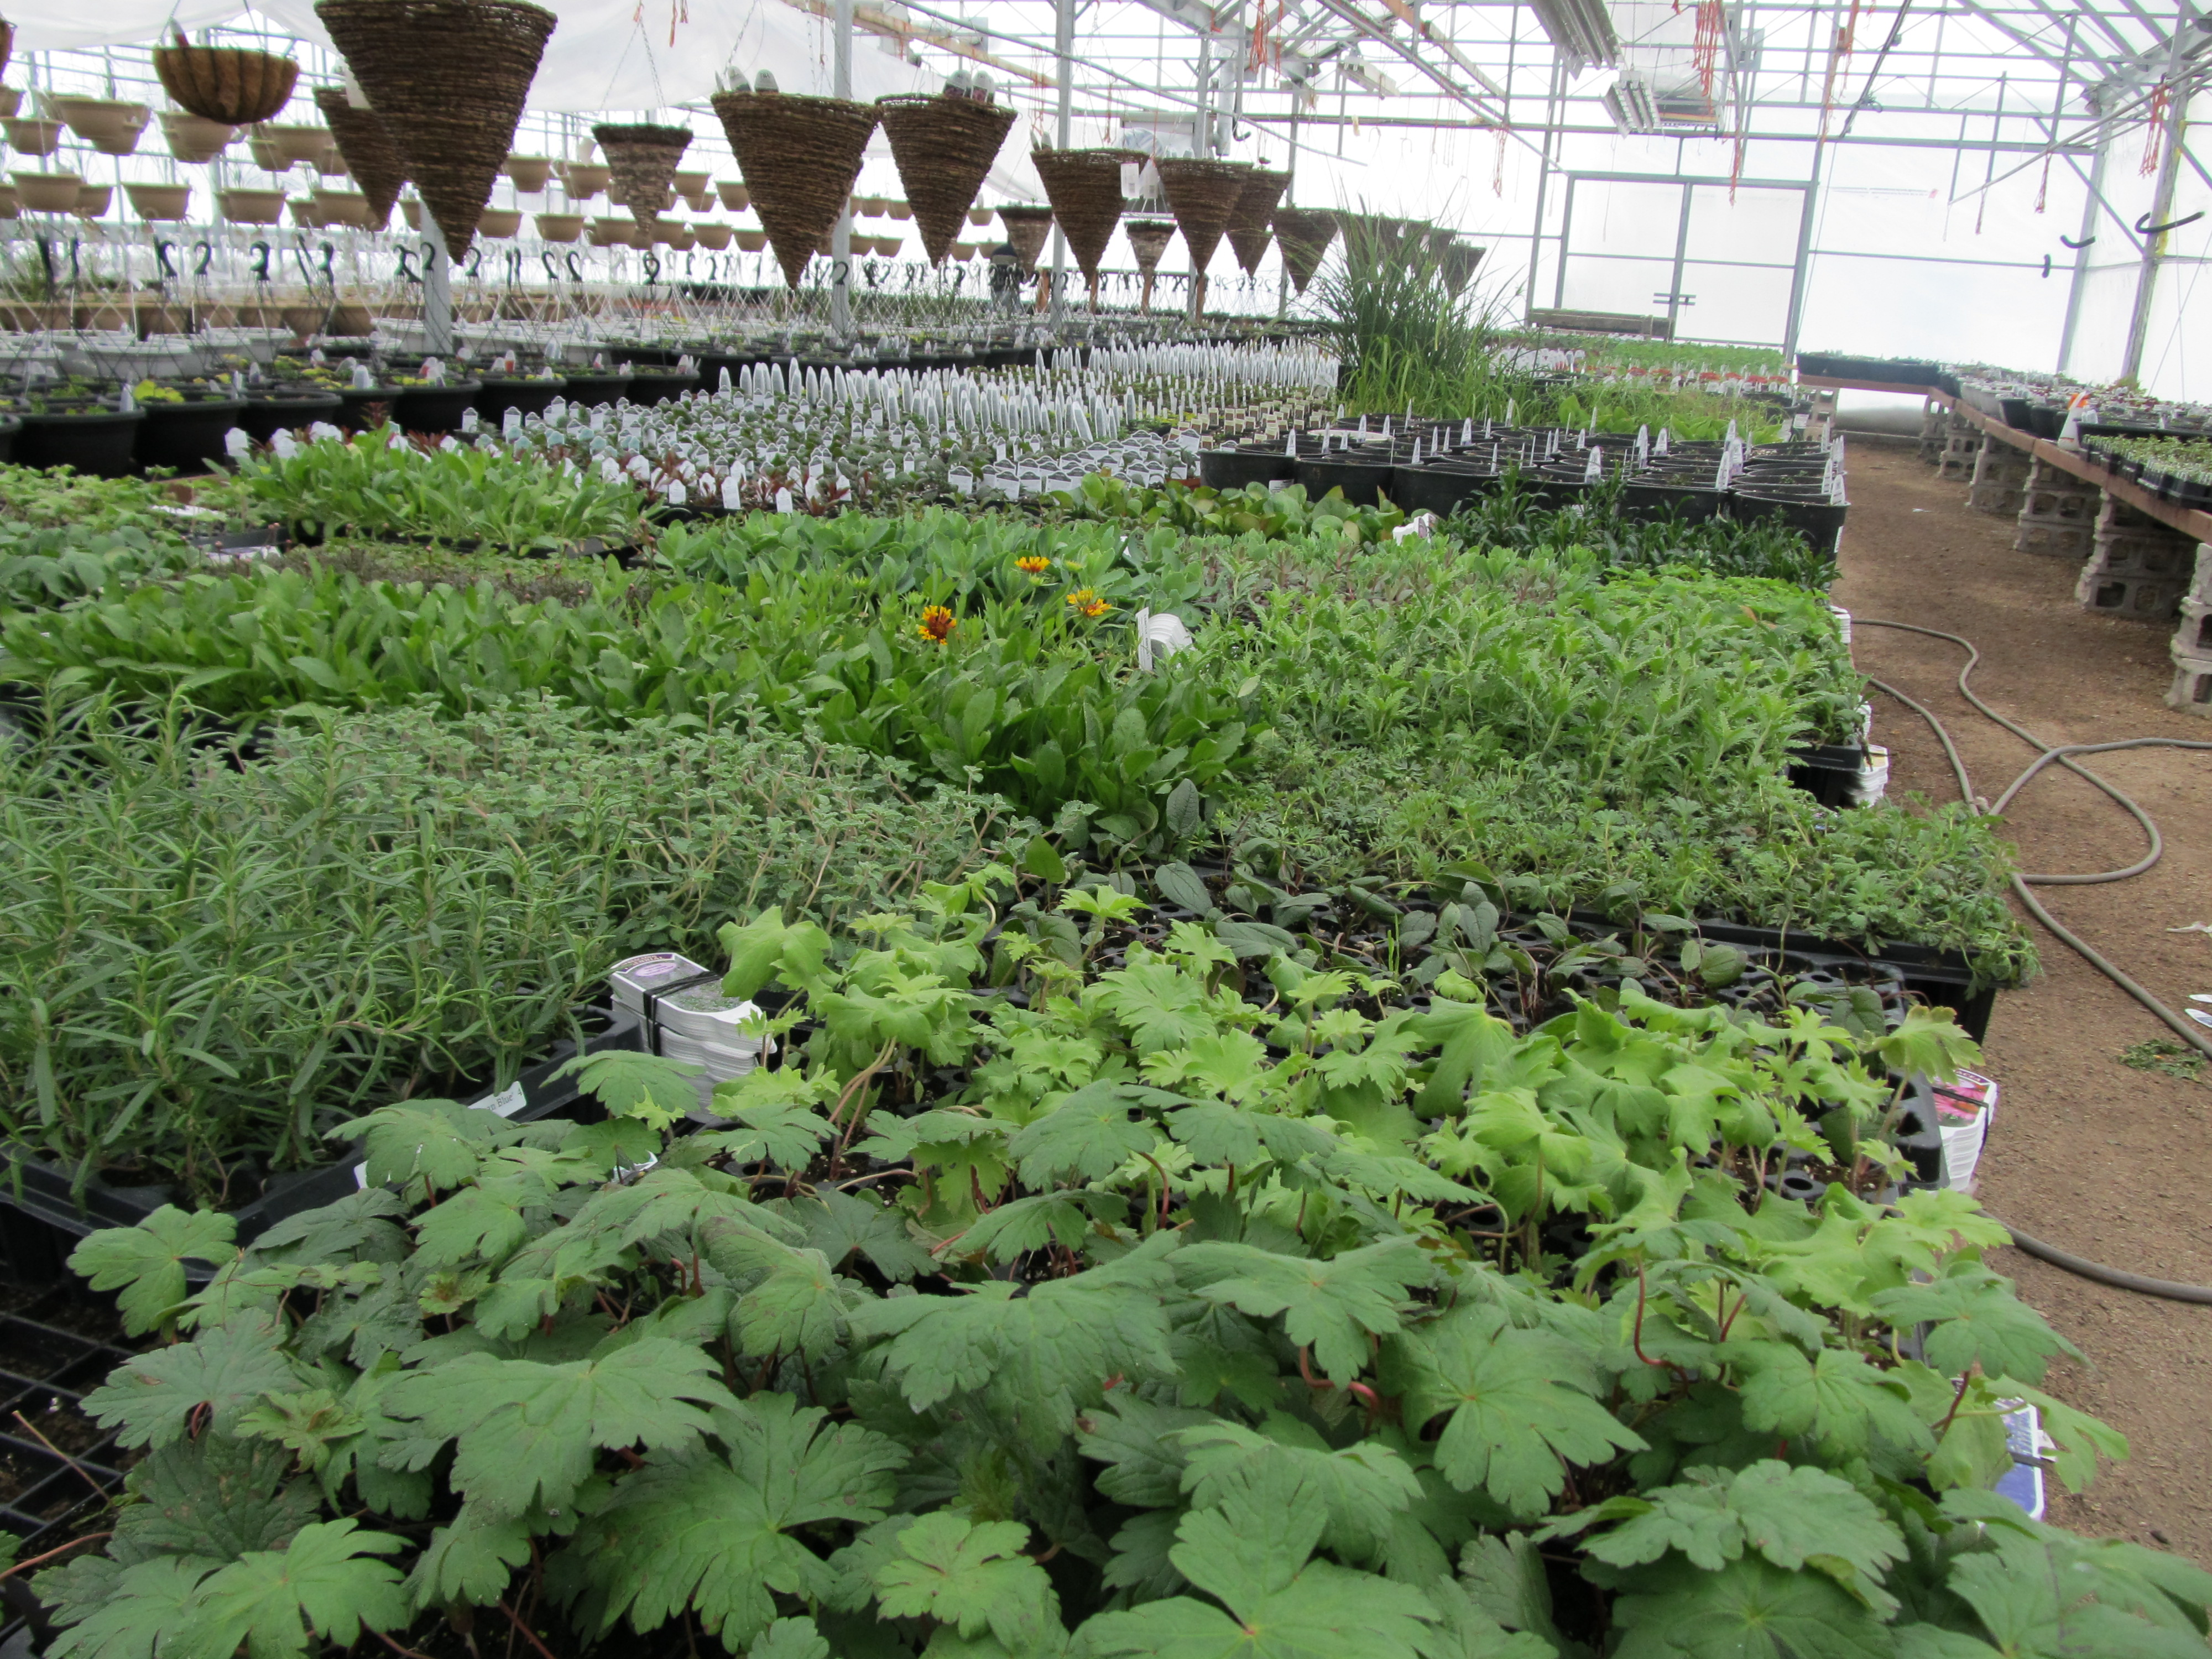 greenhuse, gardening center, nursery, jensen nursery and garden center , winnipeg, mcgillivray blvd, plants, bedding plants, hanging baskets, container gardening